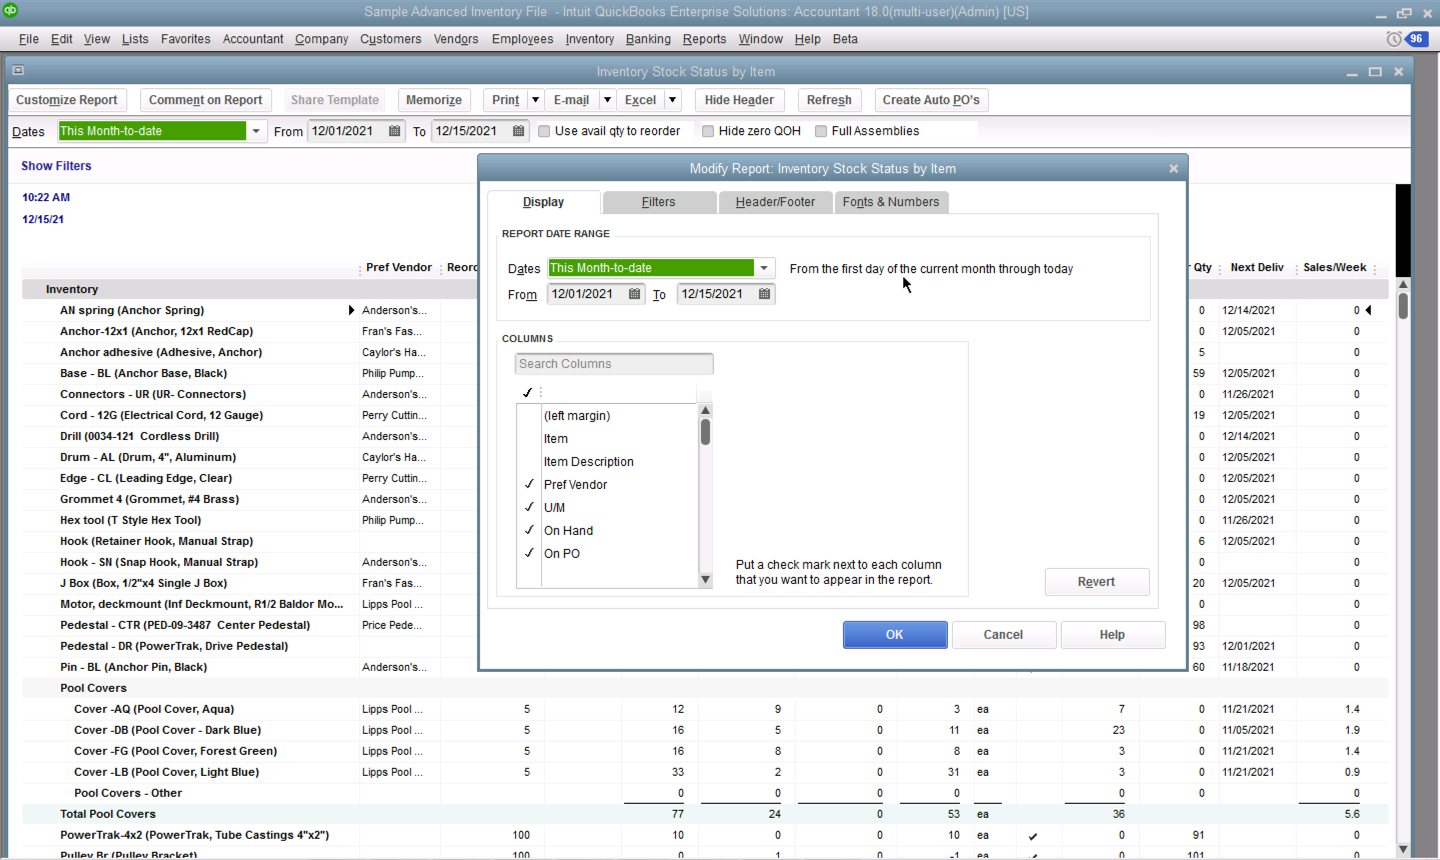 Download intuit picture and images for Quickbooks templates location